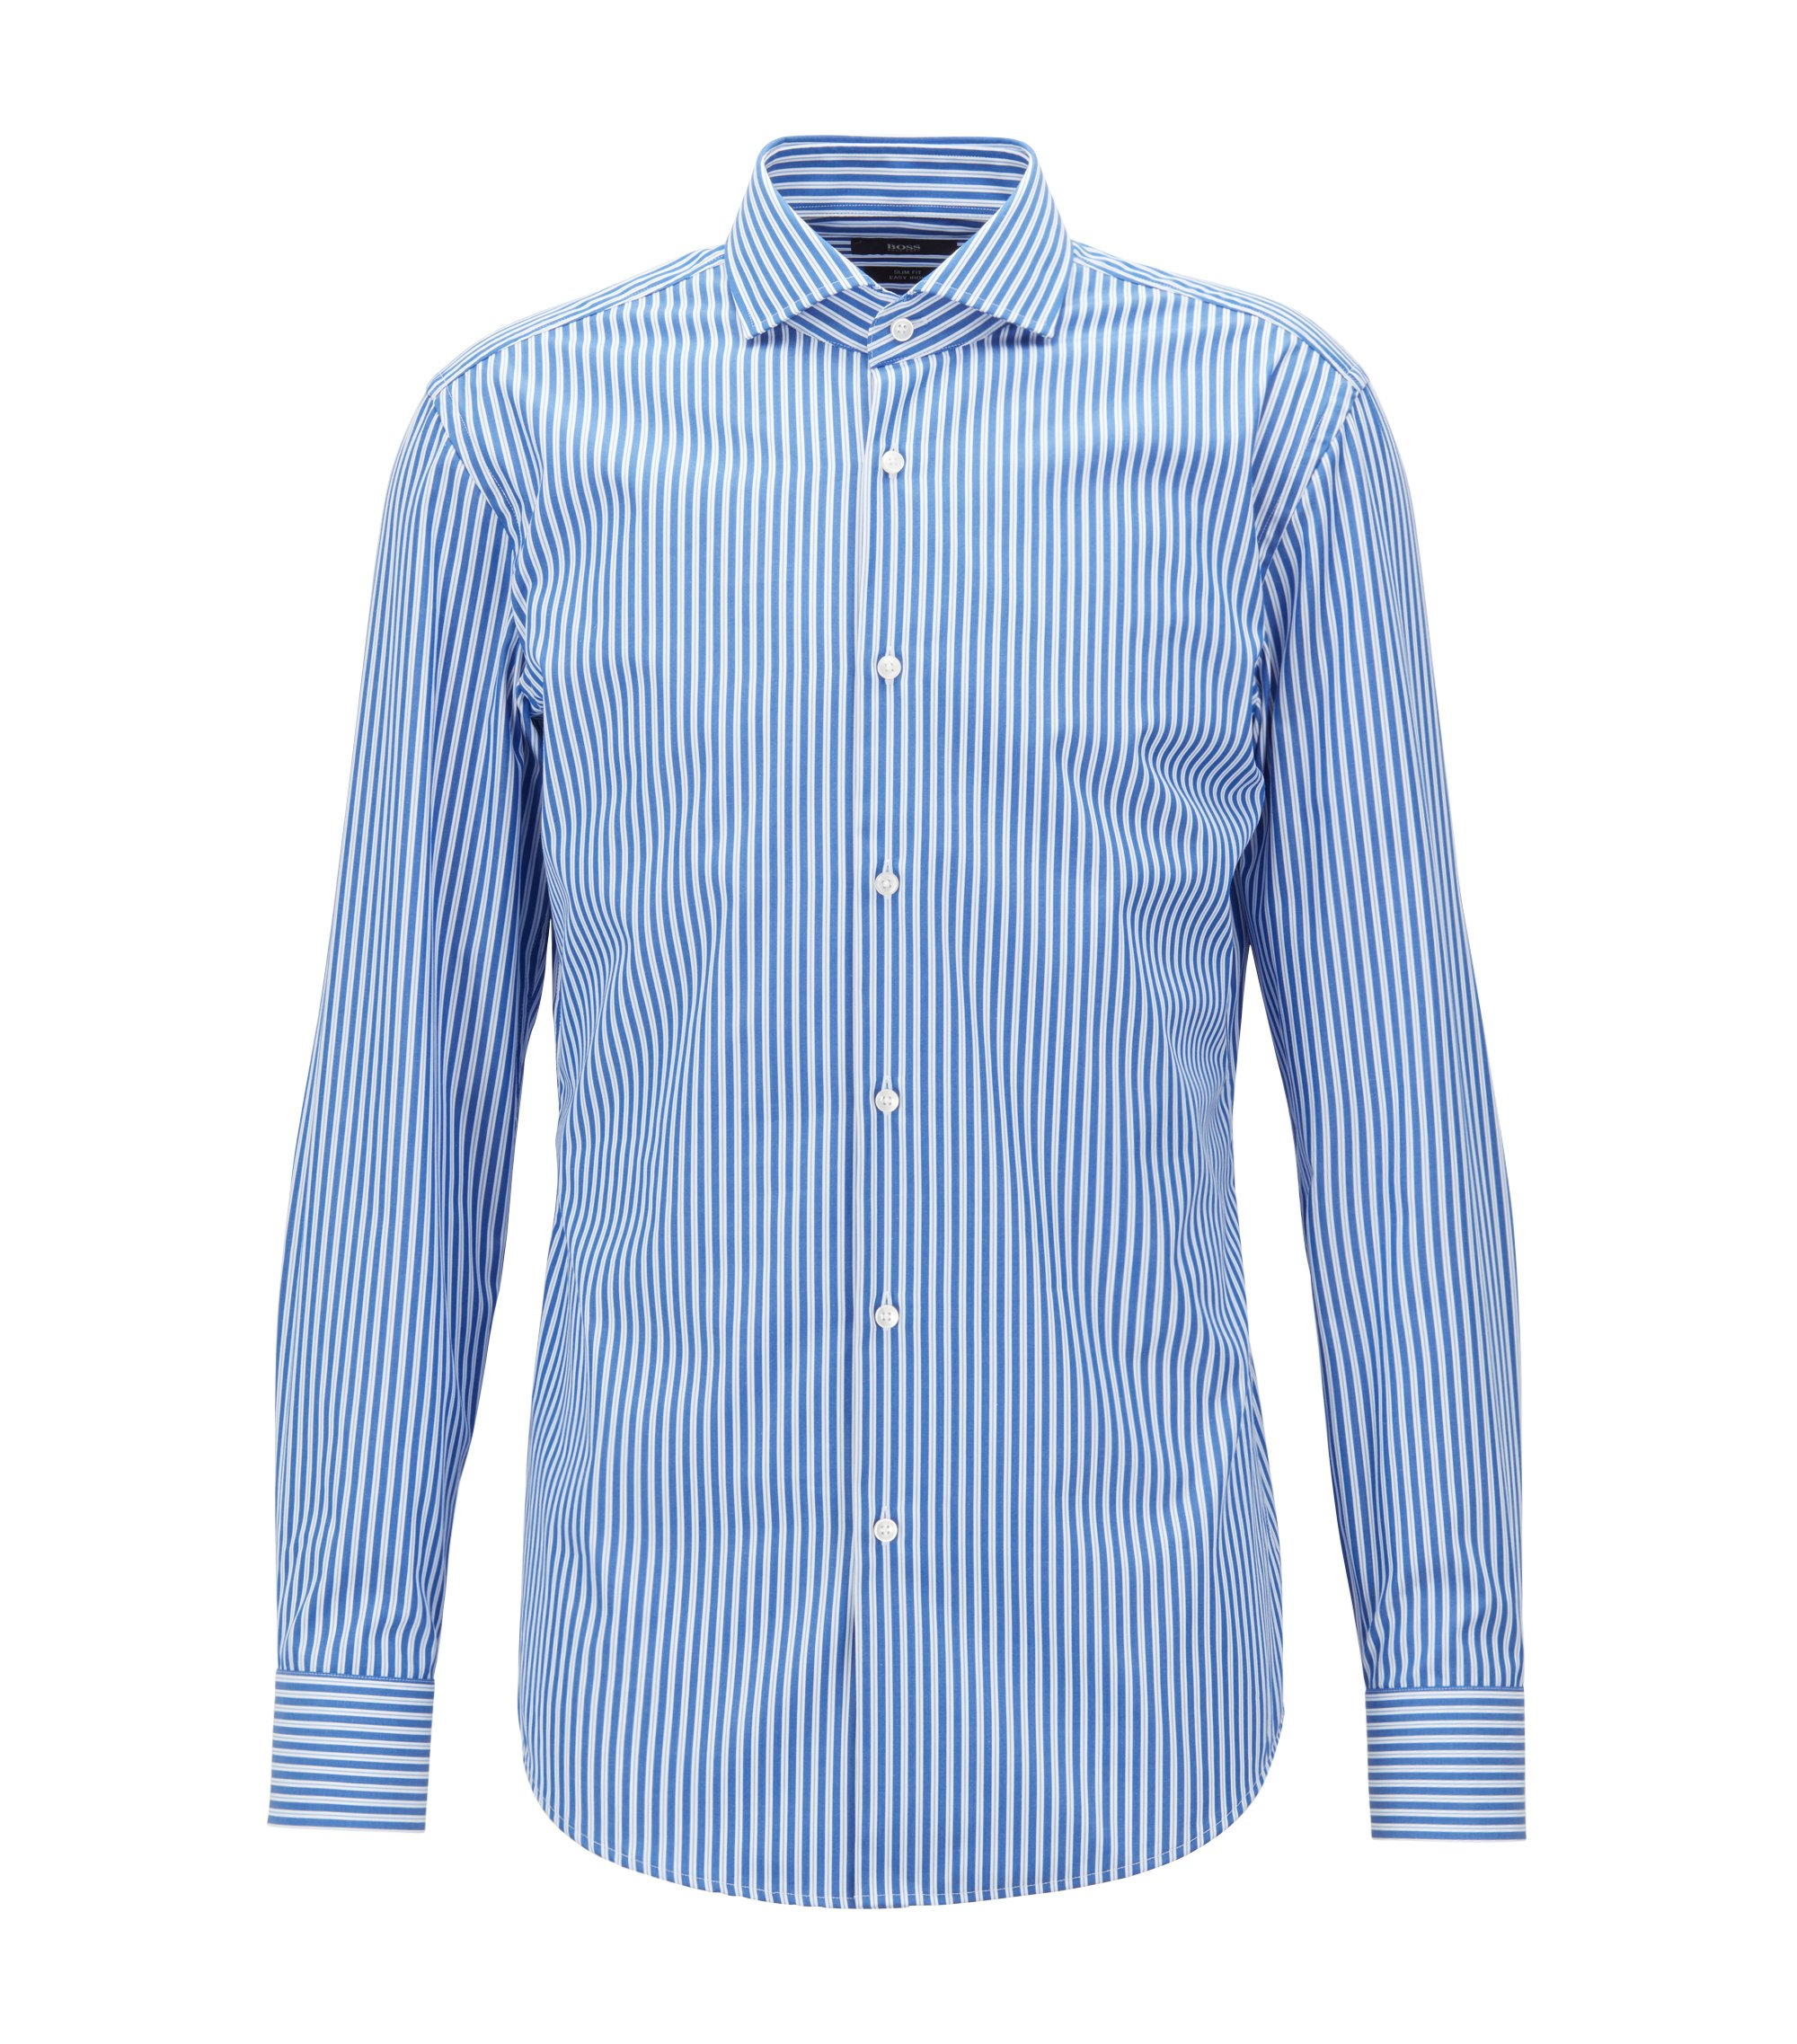 Slim-fit shirt in easy-iron striped cotton poplin, Blue